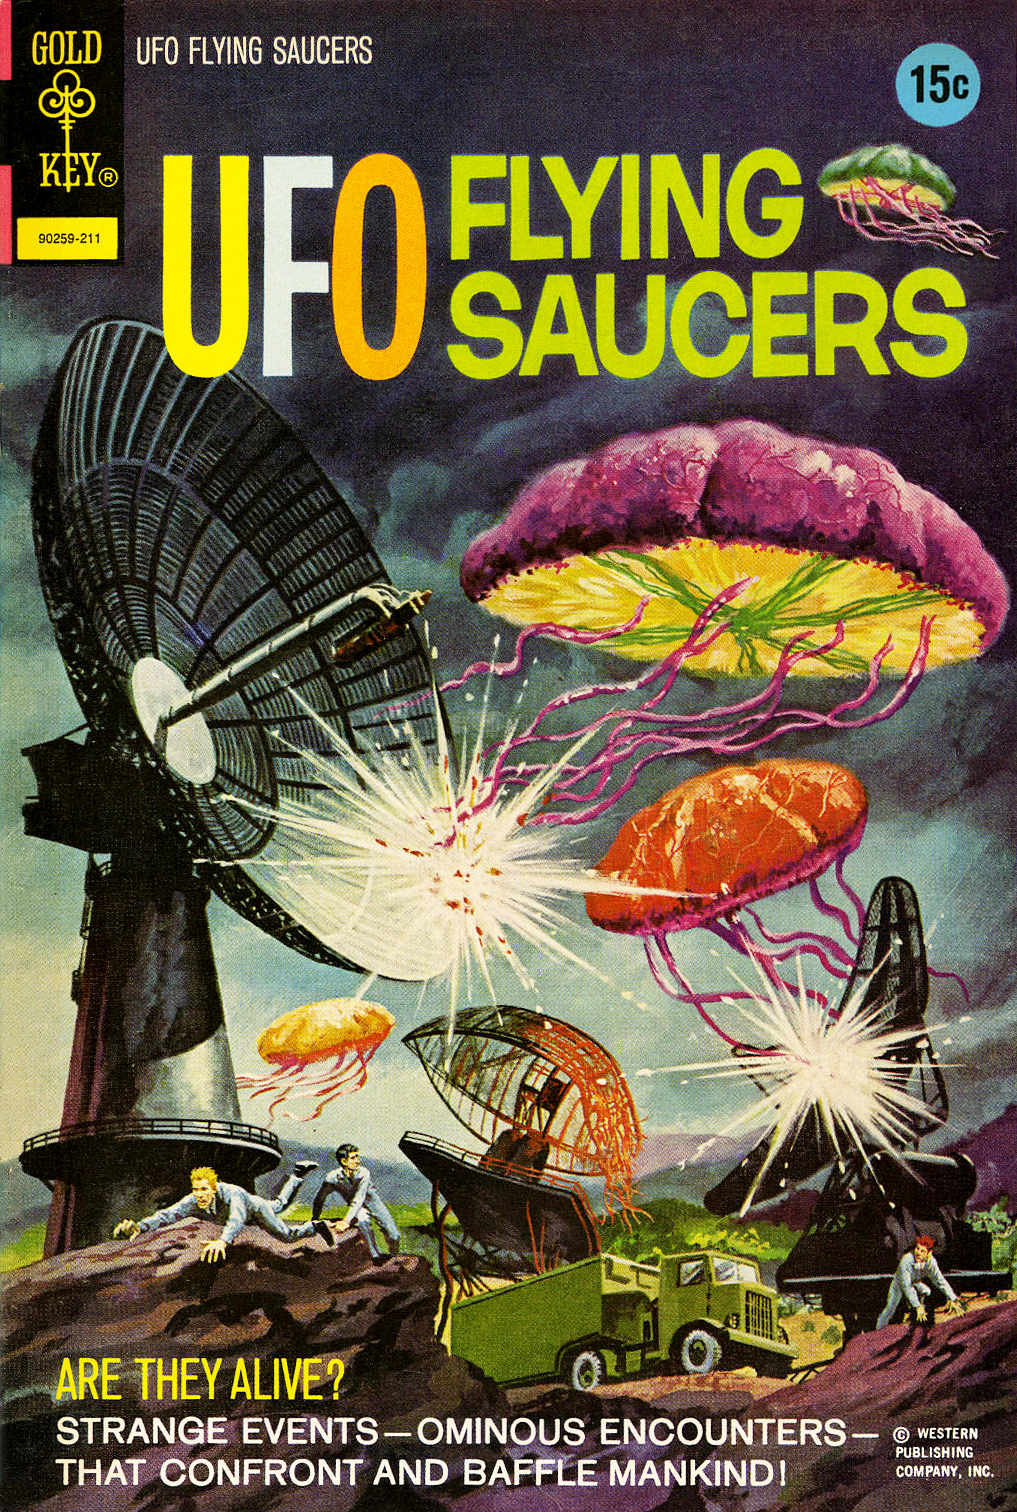 UFO Flying Saucers #3 (Gold Key, 1972)